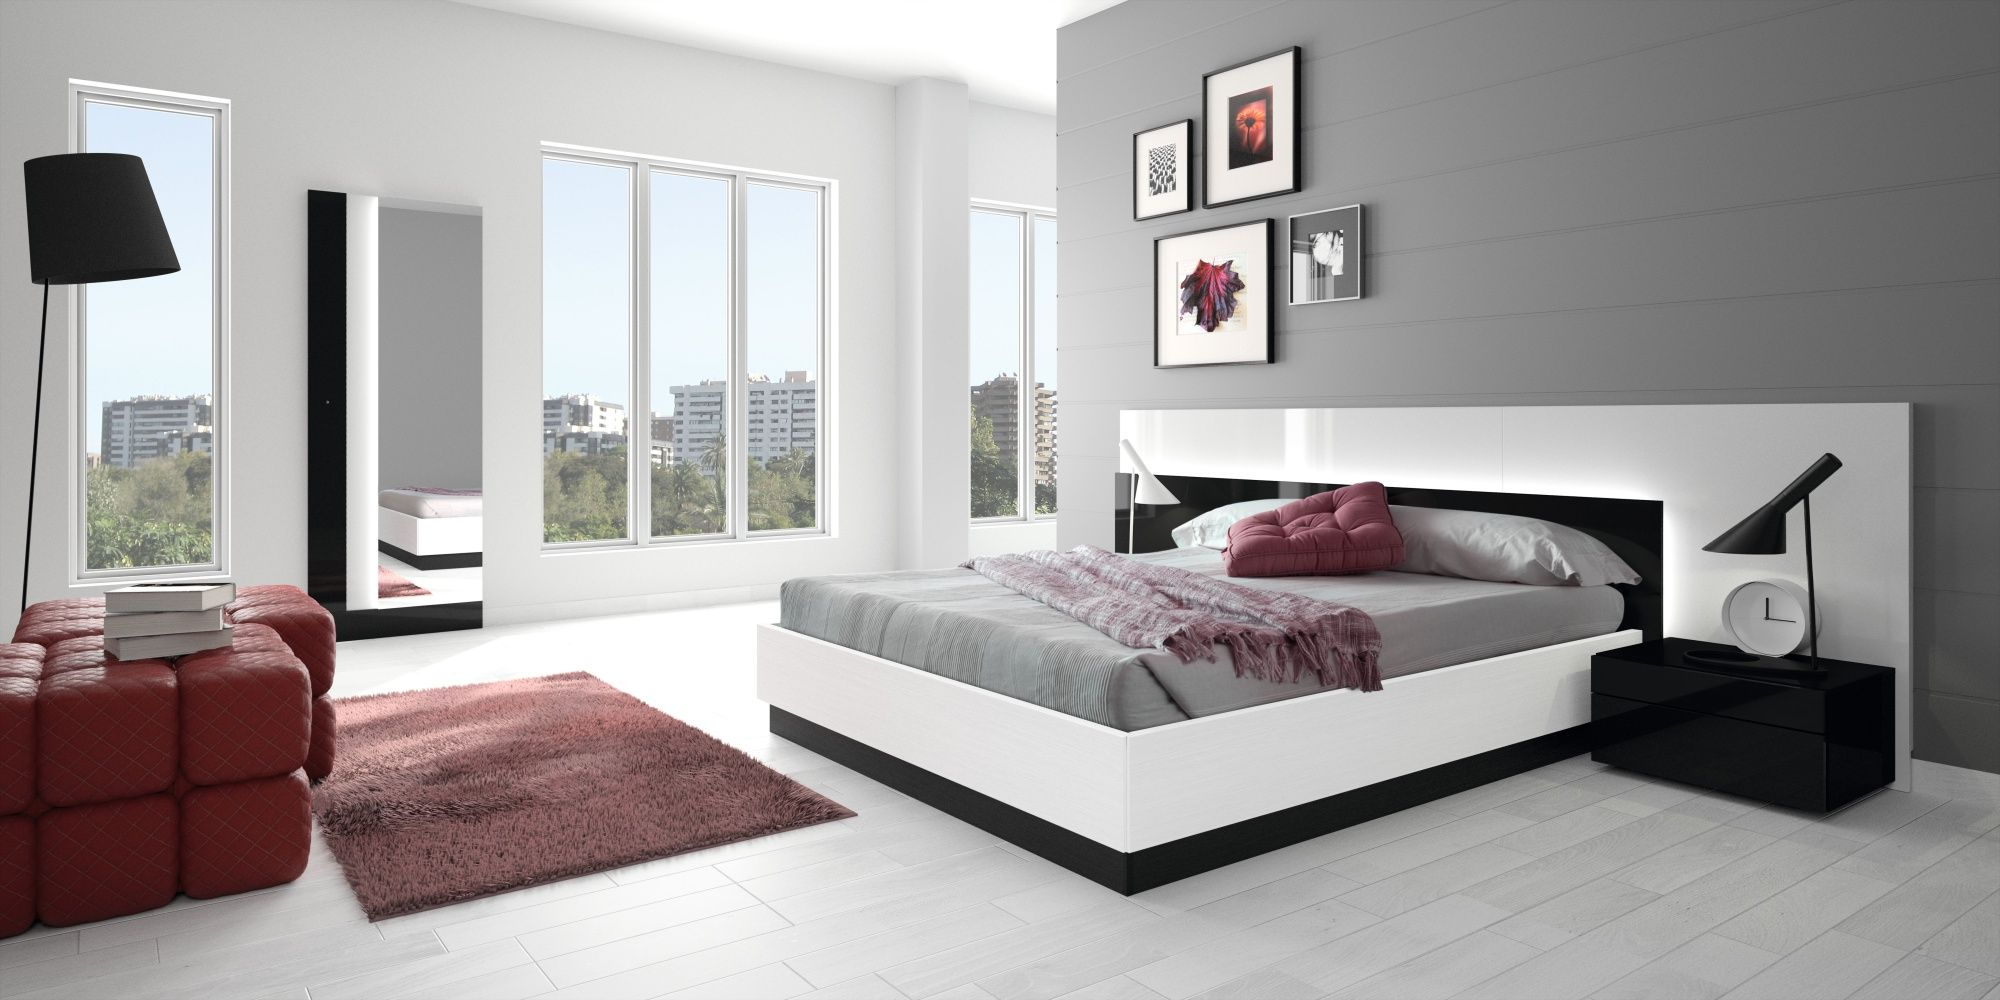 30 Awesome Bedroom Furniture Design Ideas  Bedrooms Modern